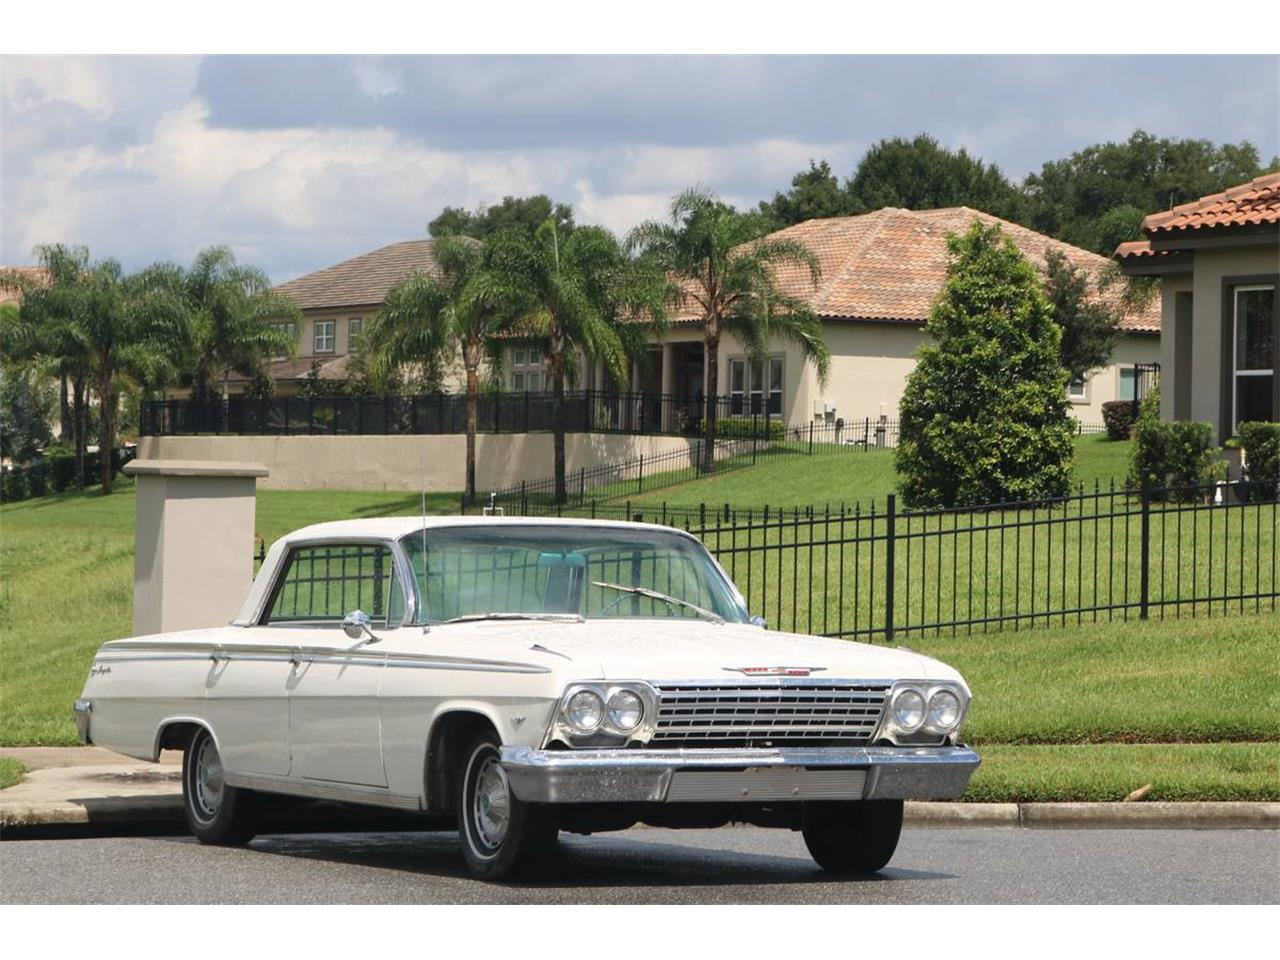 Large Picture of 1962 Chevrolet Impala located in Florida - $11,995.00 Offered by a Private Seller - JJAL